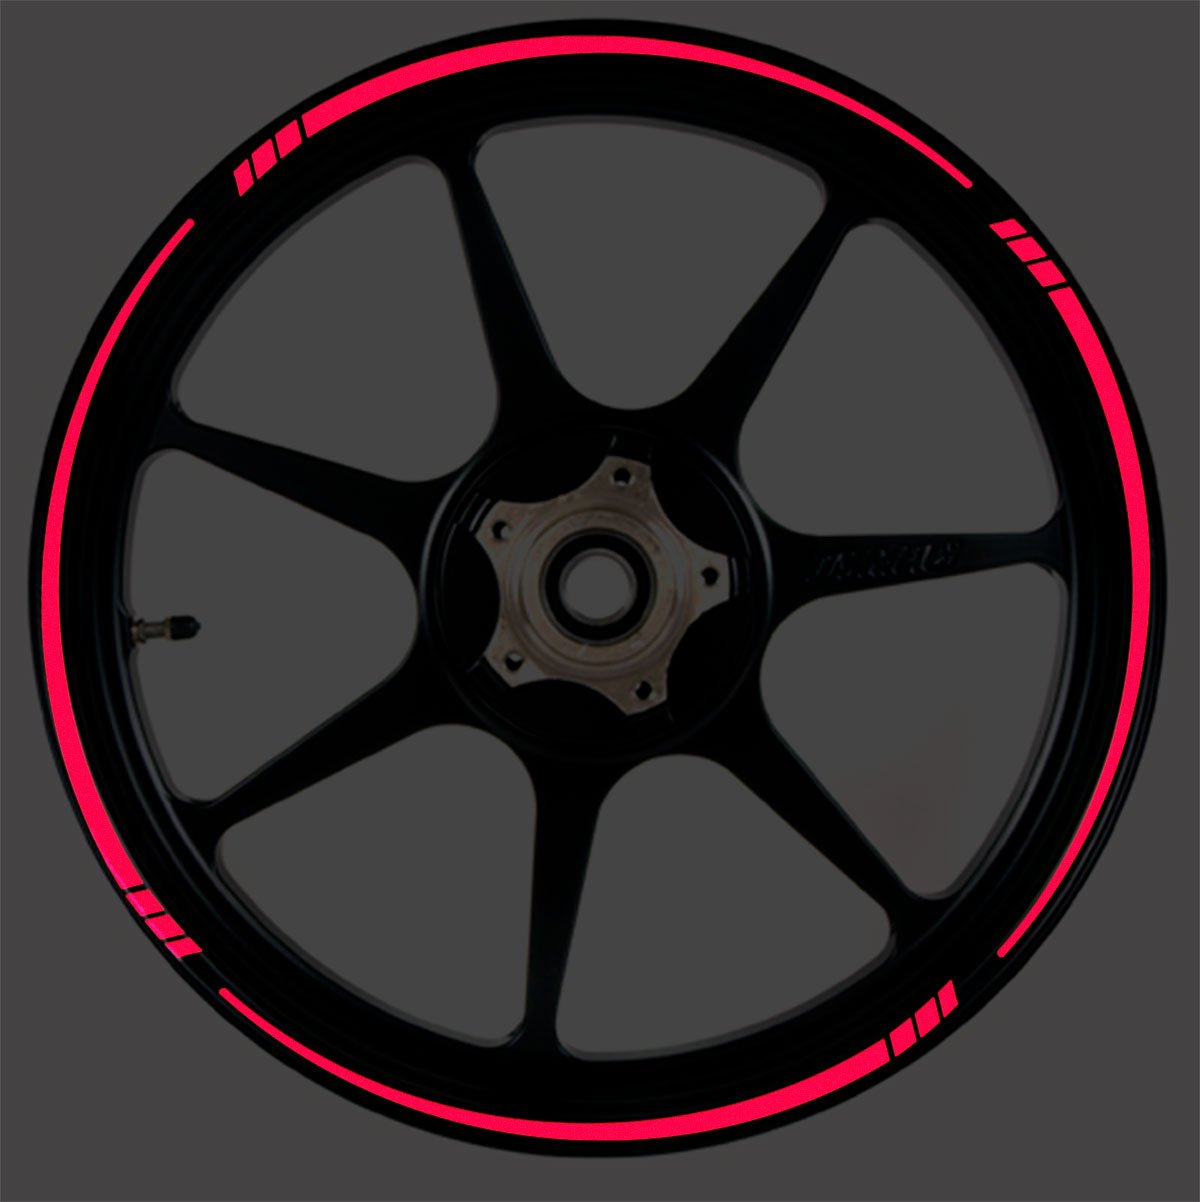 RED Reflective Speed Tapered Wheel Rim Tape Stripe fit Motorcycles, Cars, Trucks